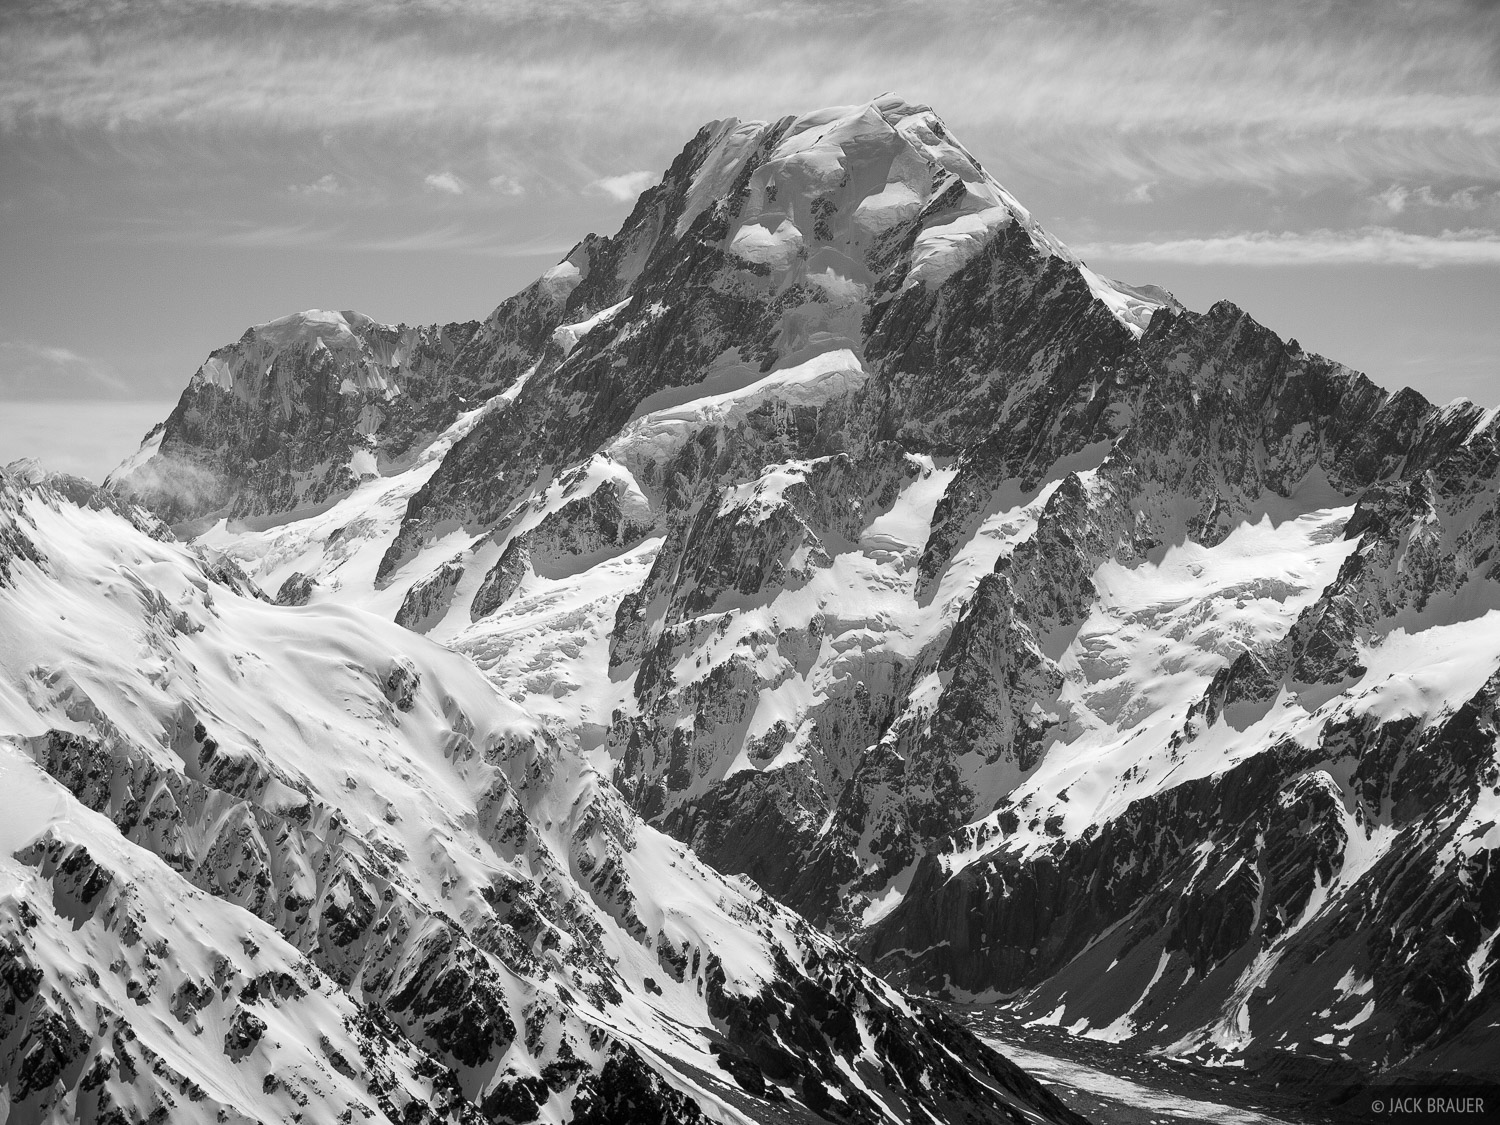 New Zealand, Aoraki, Mount Cook, bw, Southern Alps, photo